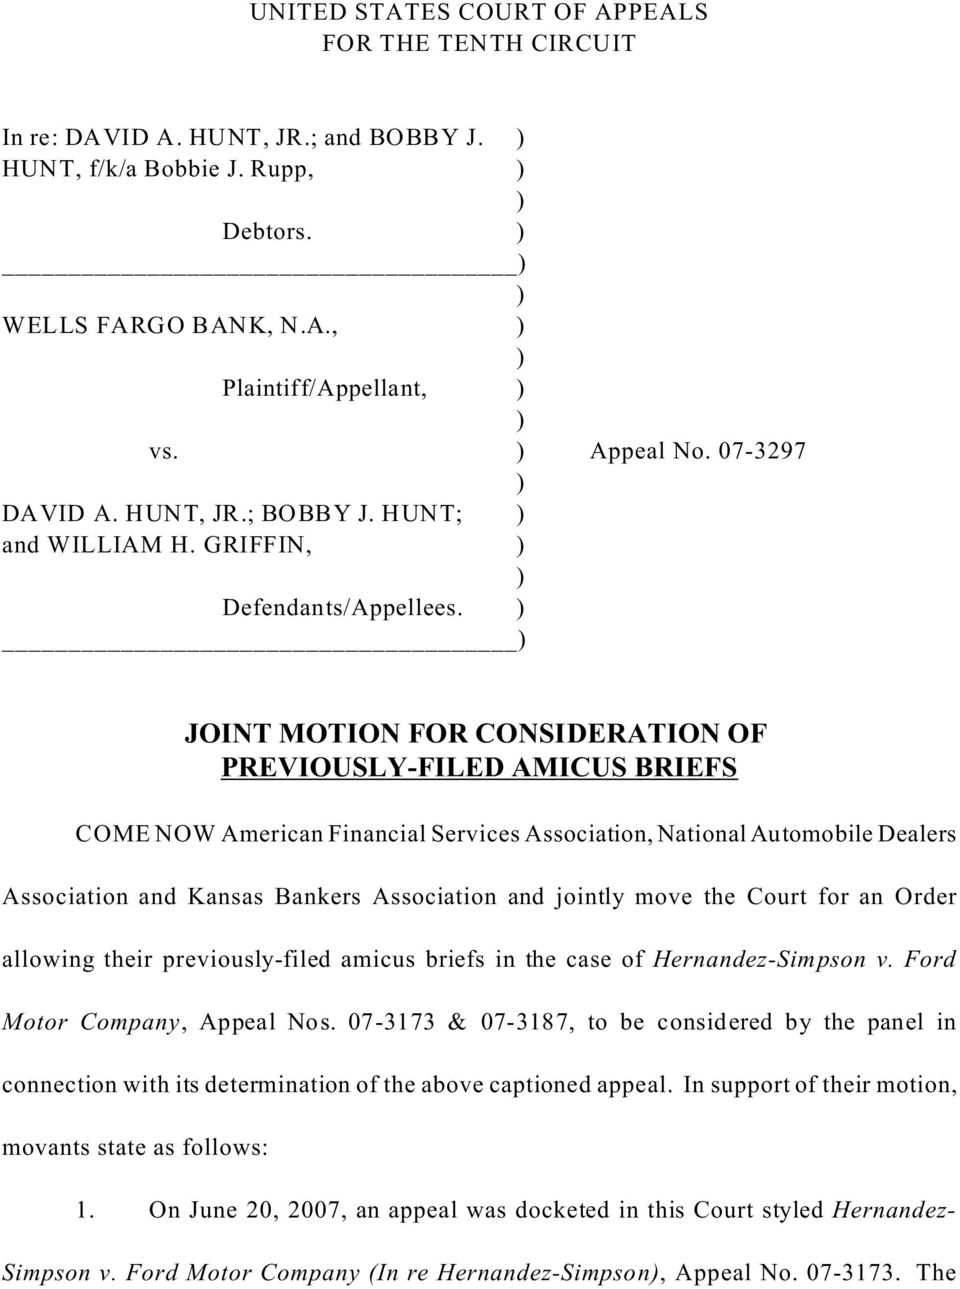 JOINT MOTION FOR CONSIDERATION OF PREVIOUSLY-FILED AMICUS BRIEFS COME NOW American Financial Services Association, National Automobile Dealers Association and Kansas Bankers Association and jointly